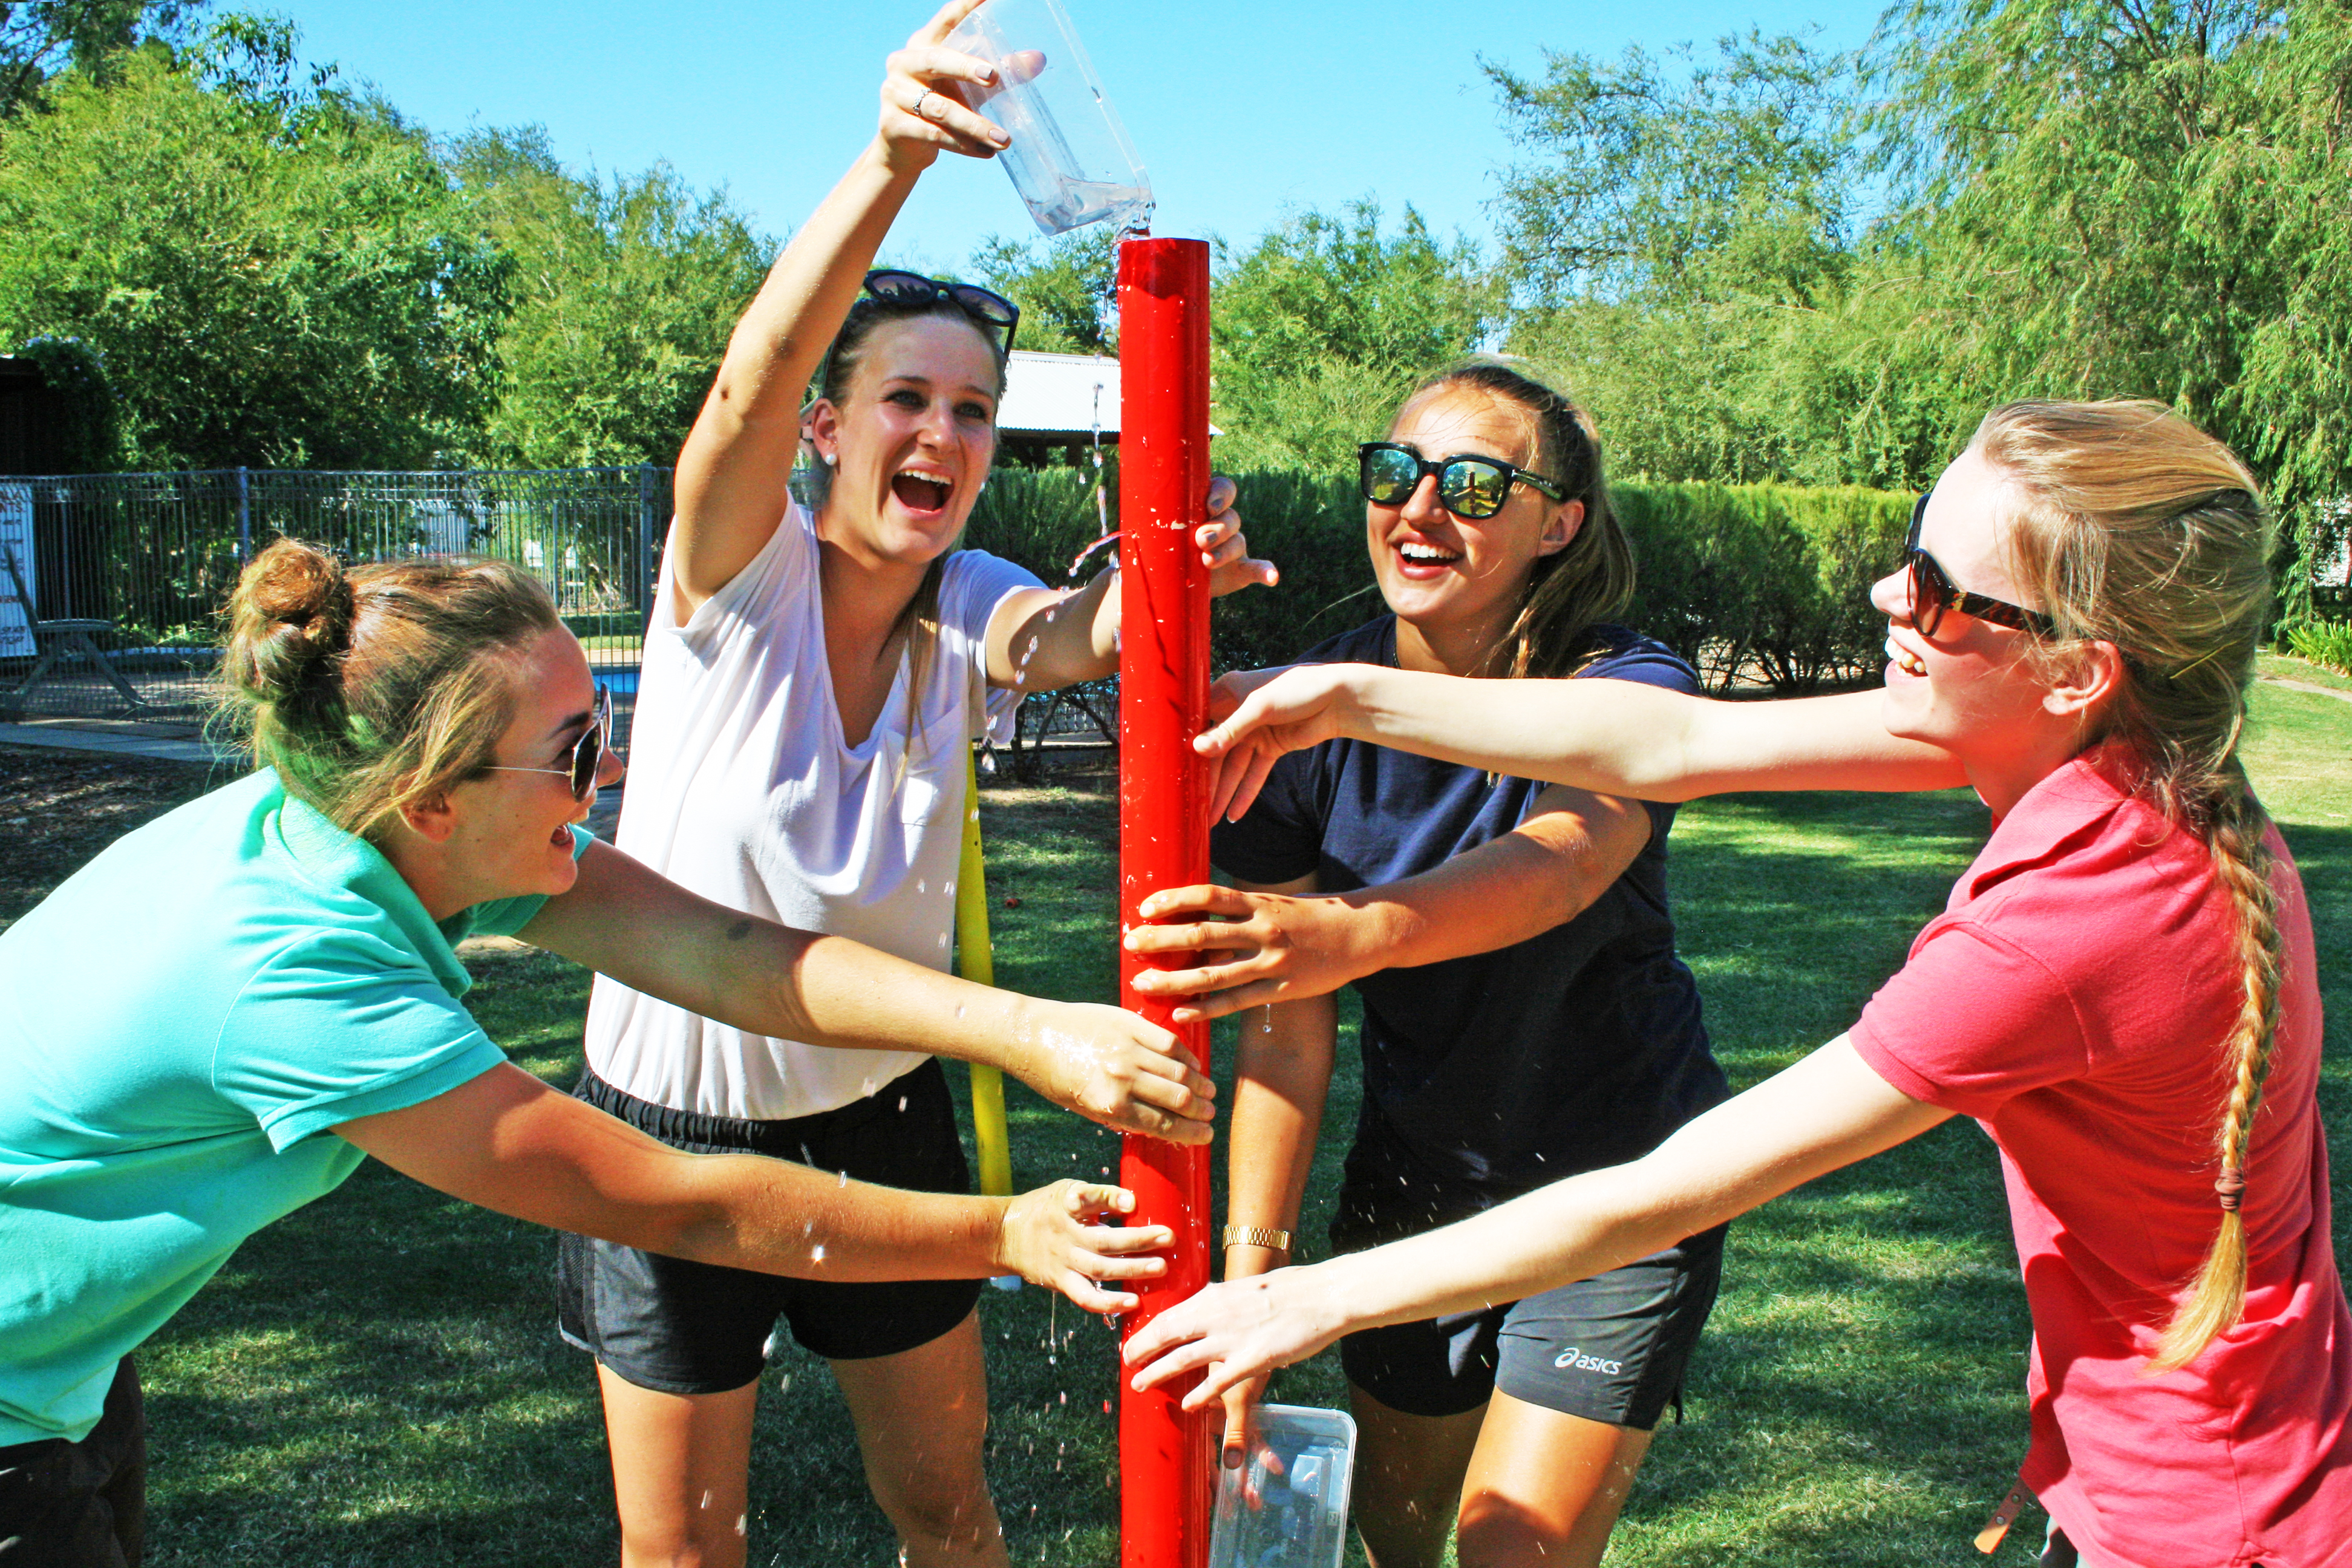 Apologise, teen team building camps in il